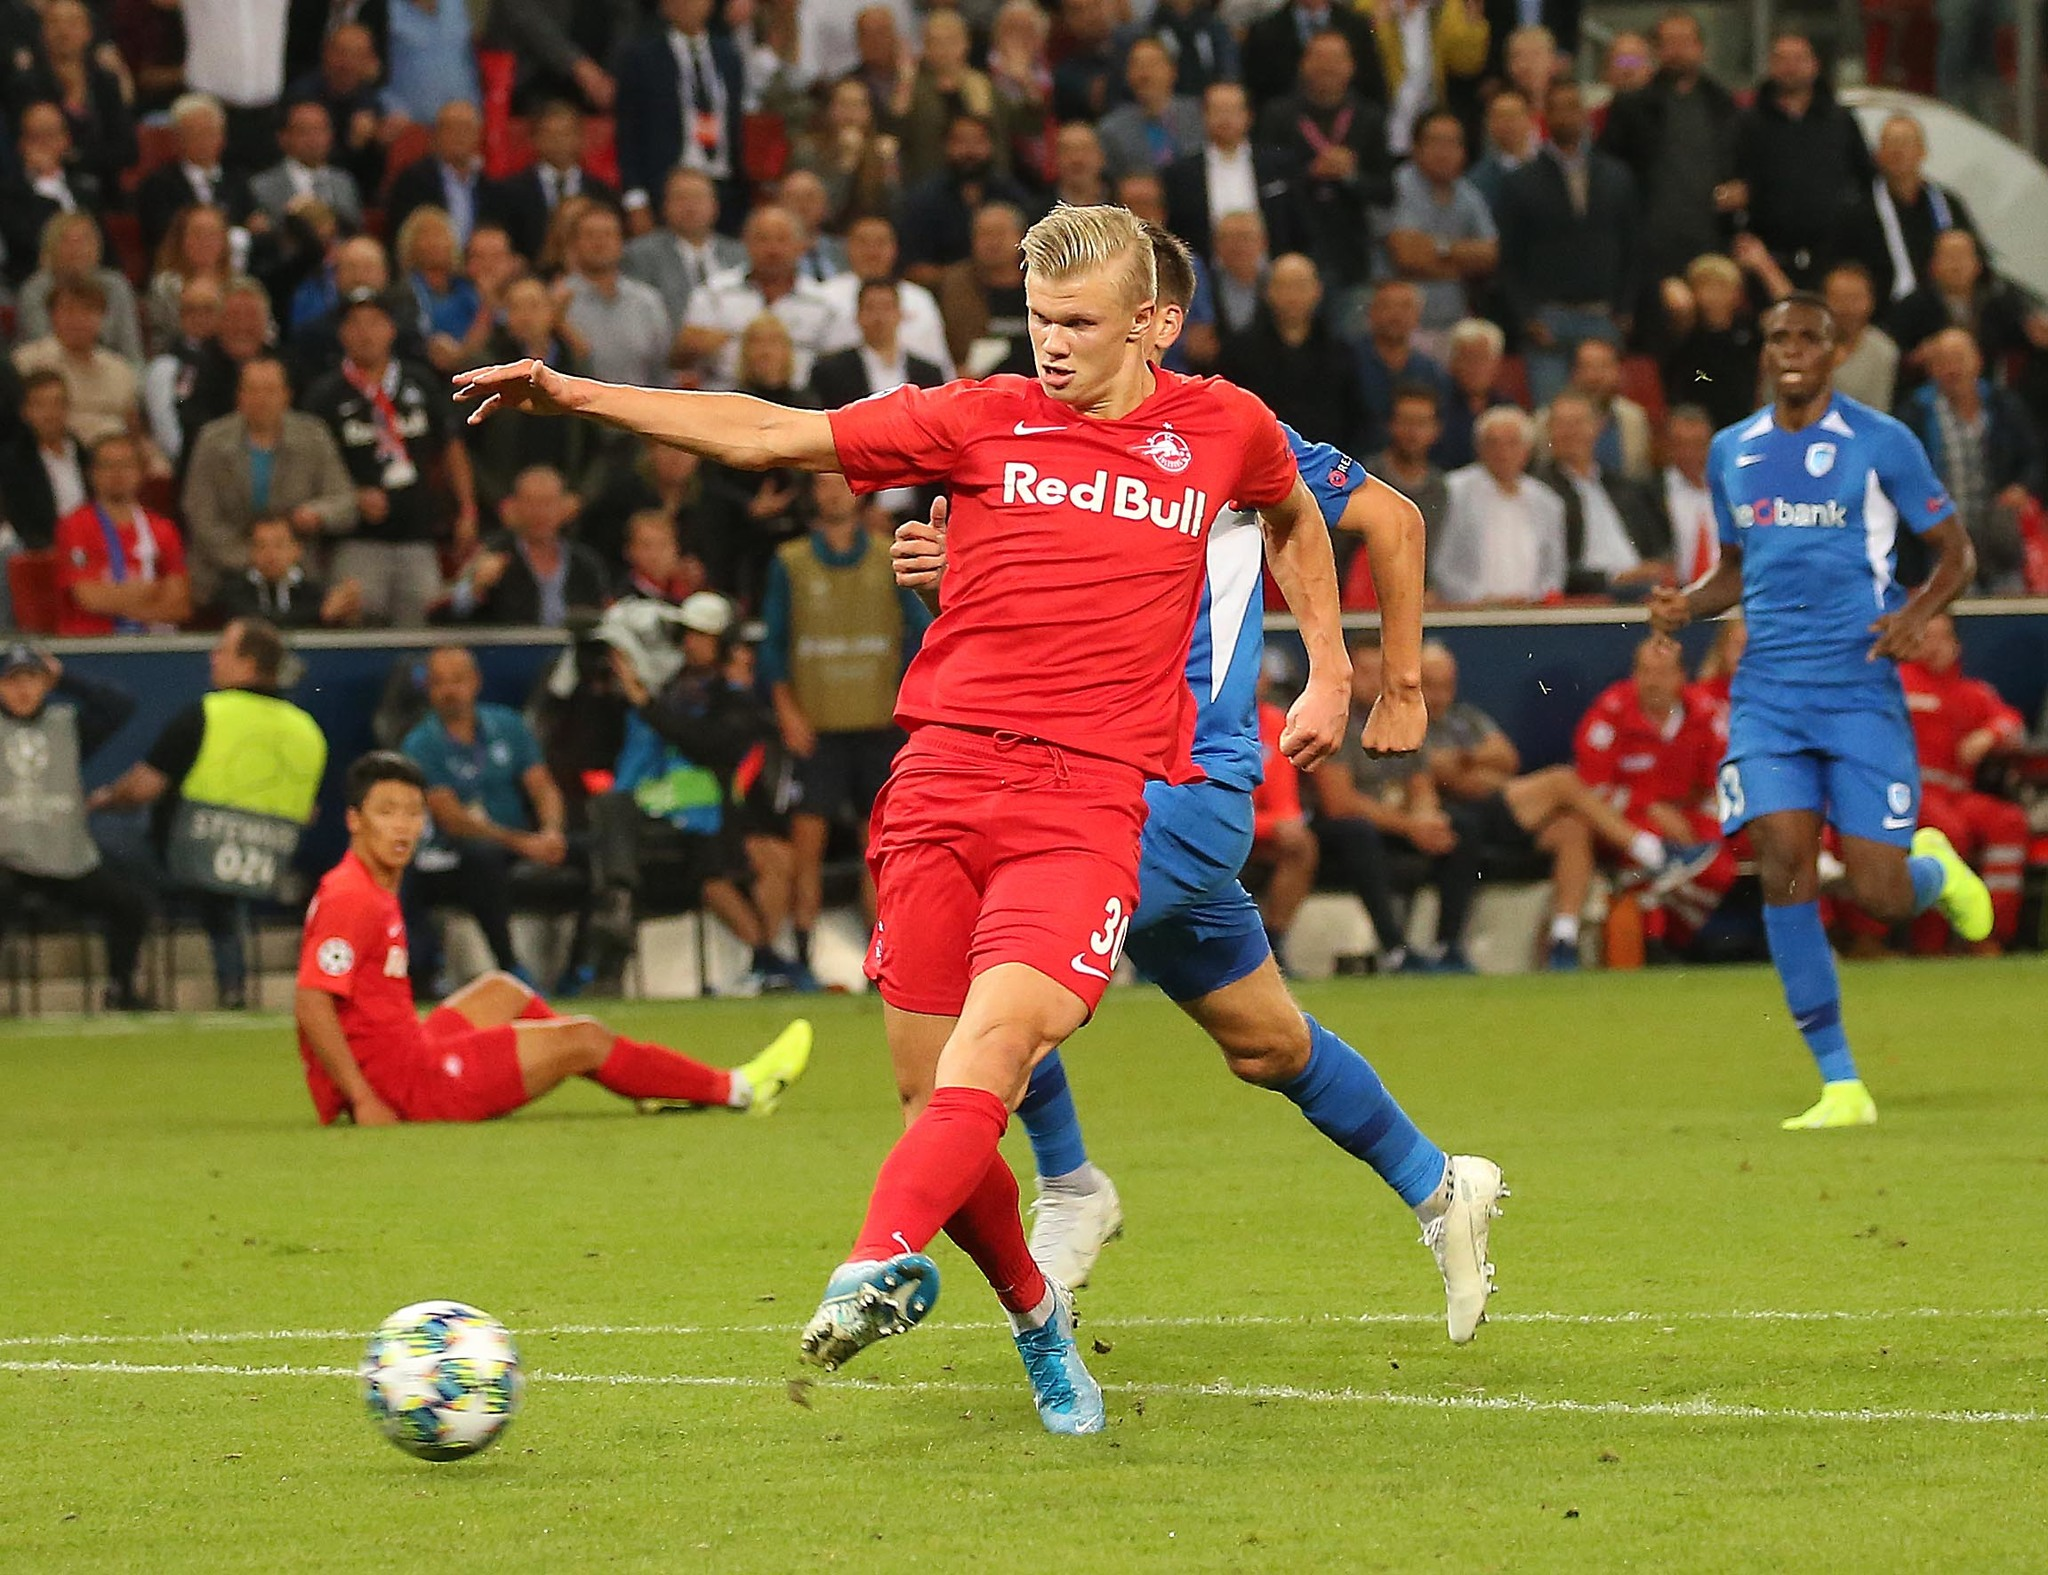 <HIT>Salzburg</HIT>s Norwegian forward Erling Braut Haland scores during the UEFA Champions League Group E football match <HIT>Salzburg</HIT> v Genk in <HIT>Salzburg</HIT>, Austria, on September 17, 2019. (Photo by KRUGFOTO / APA / AFP) / Austria OUT